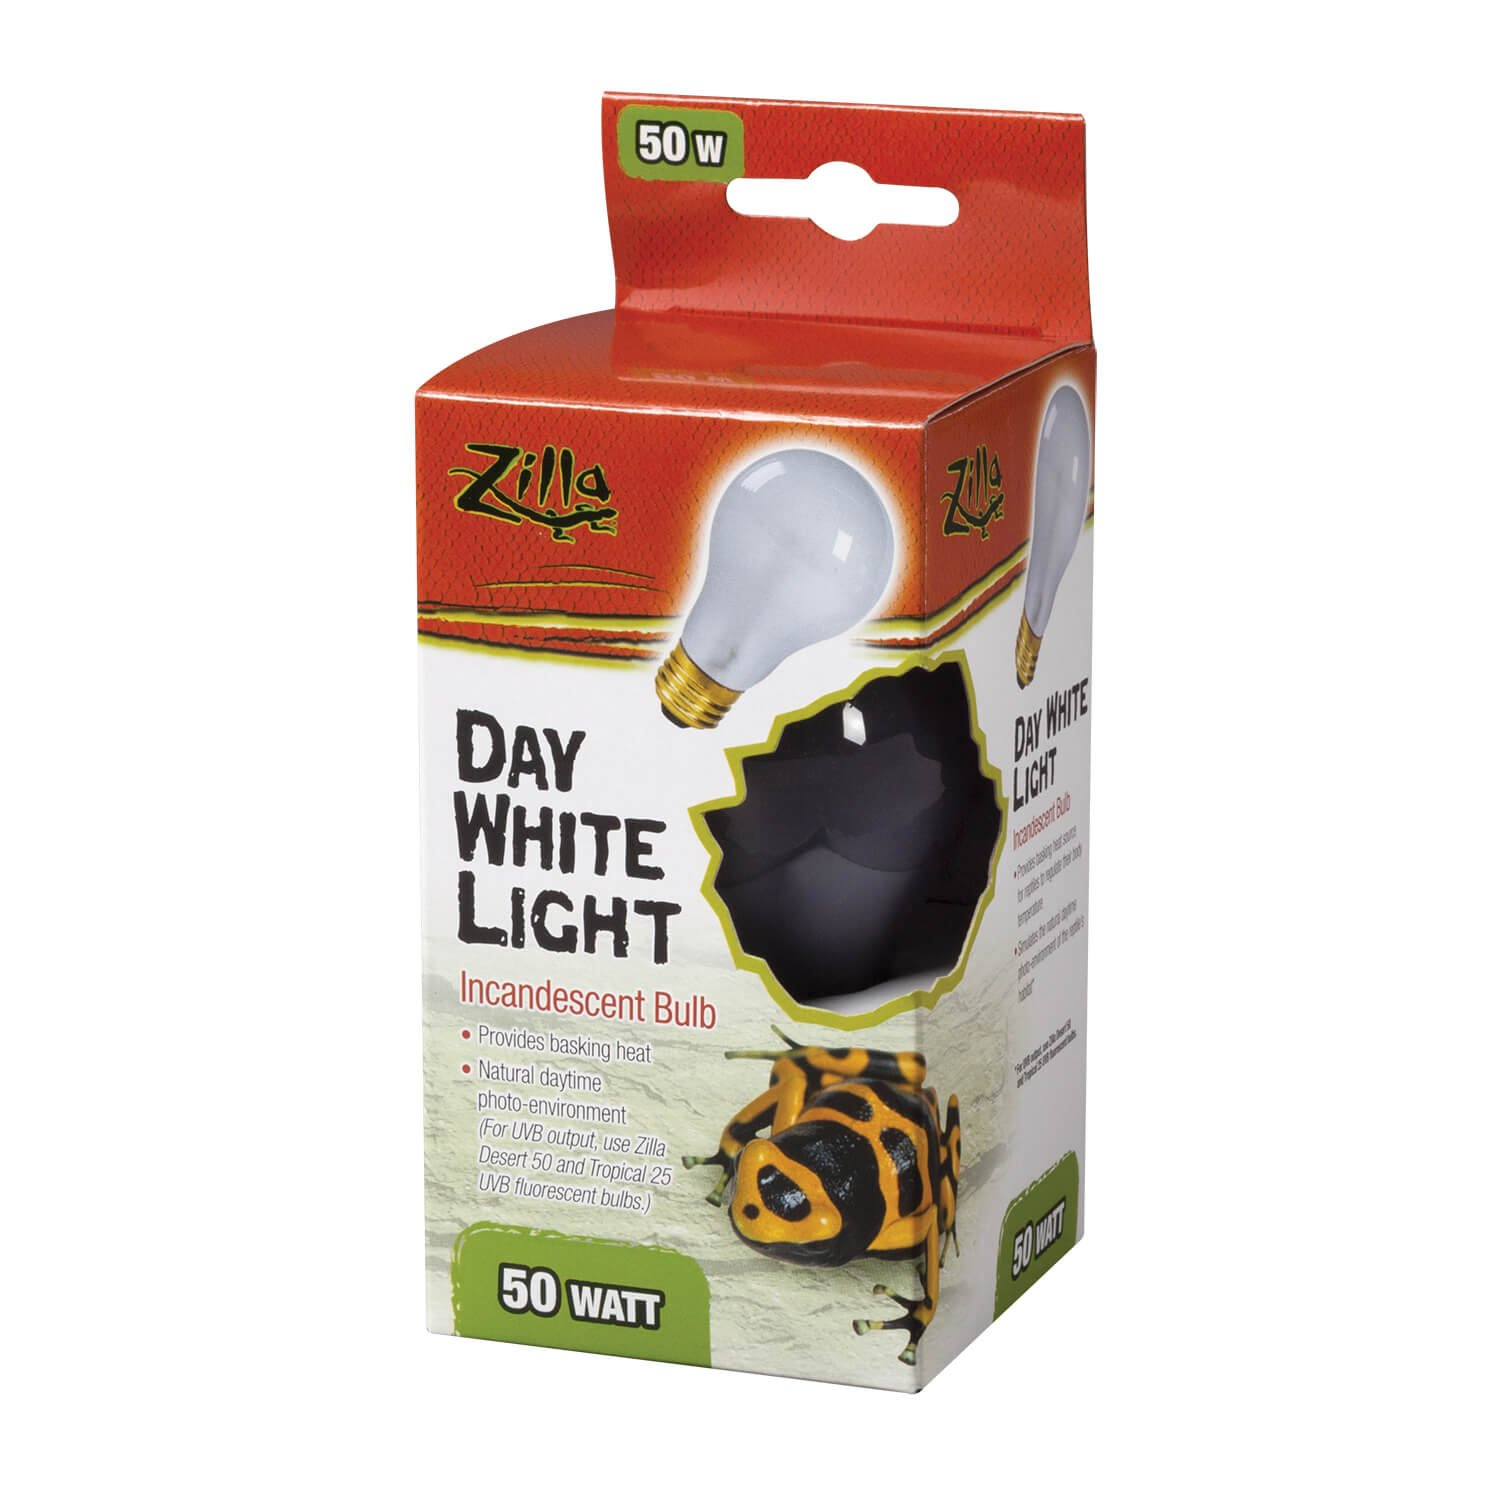 Zilla 09919 Day Blue Light Incandescent Bulb, 150-Watt 100109919